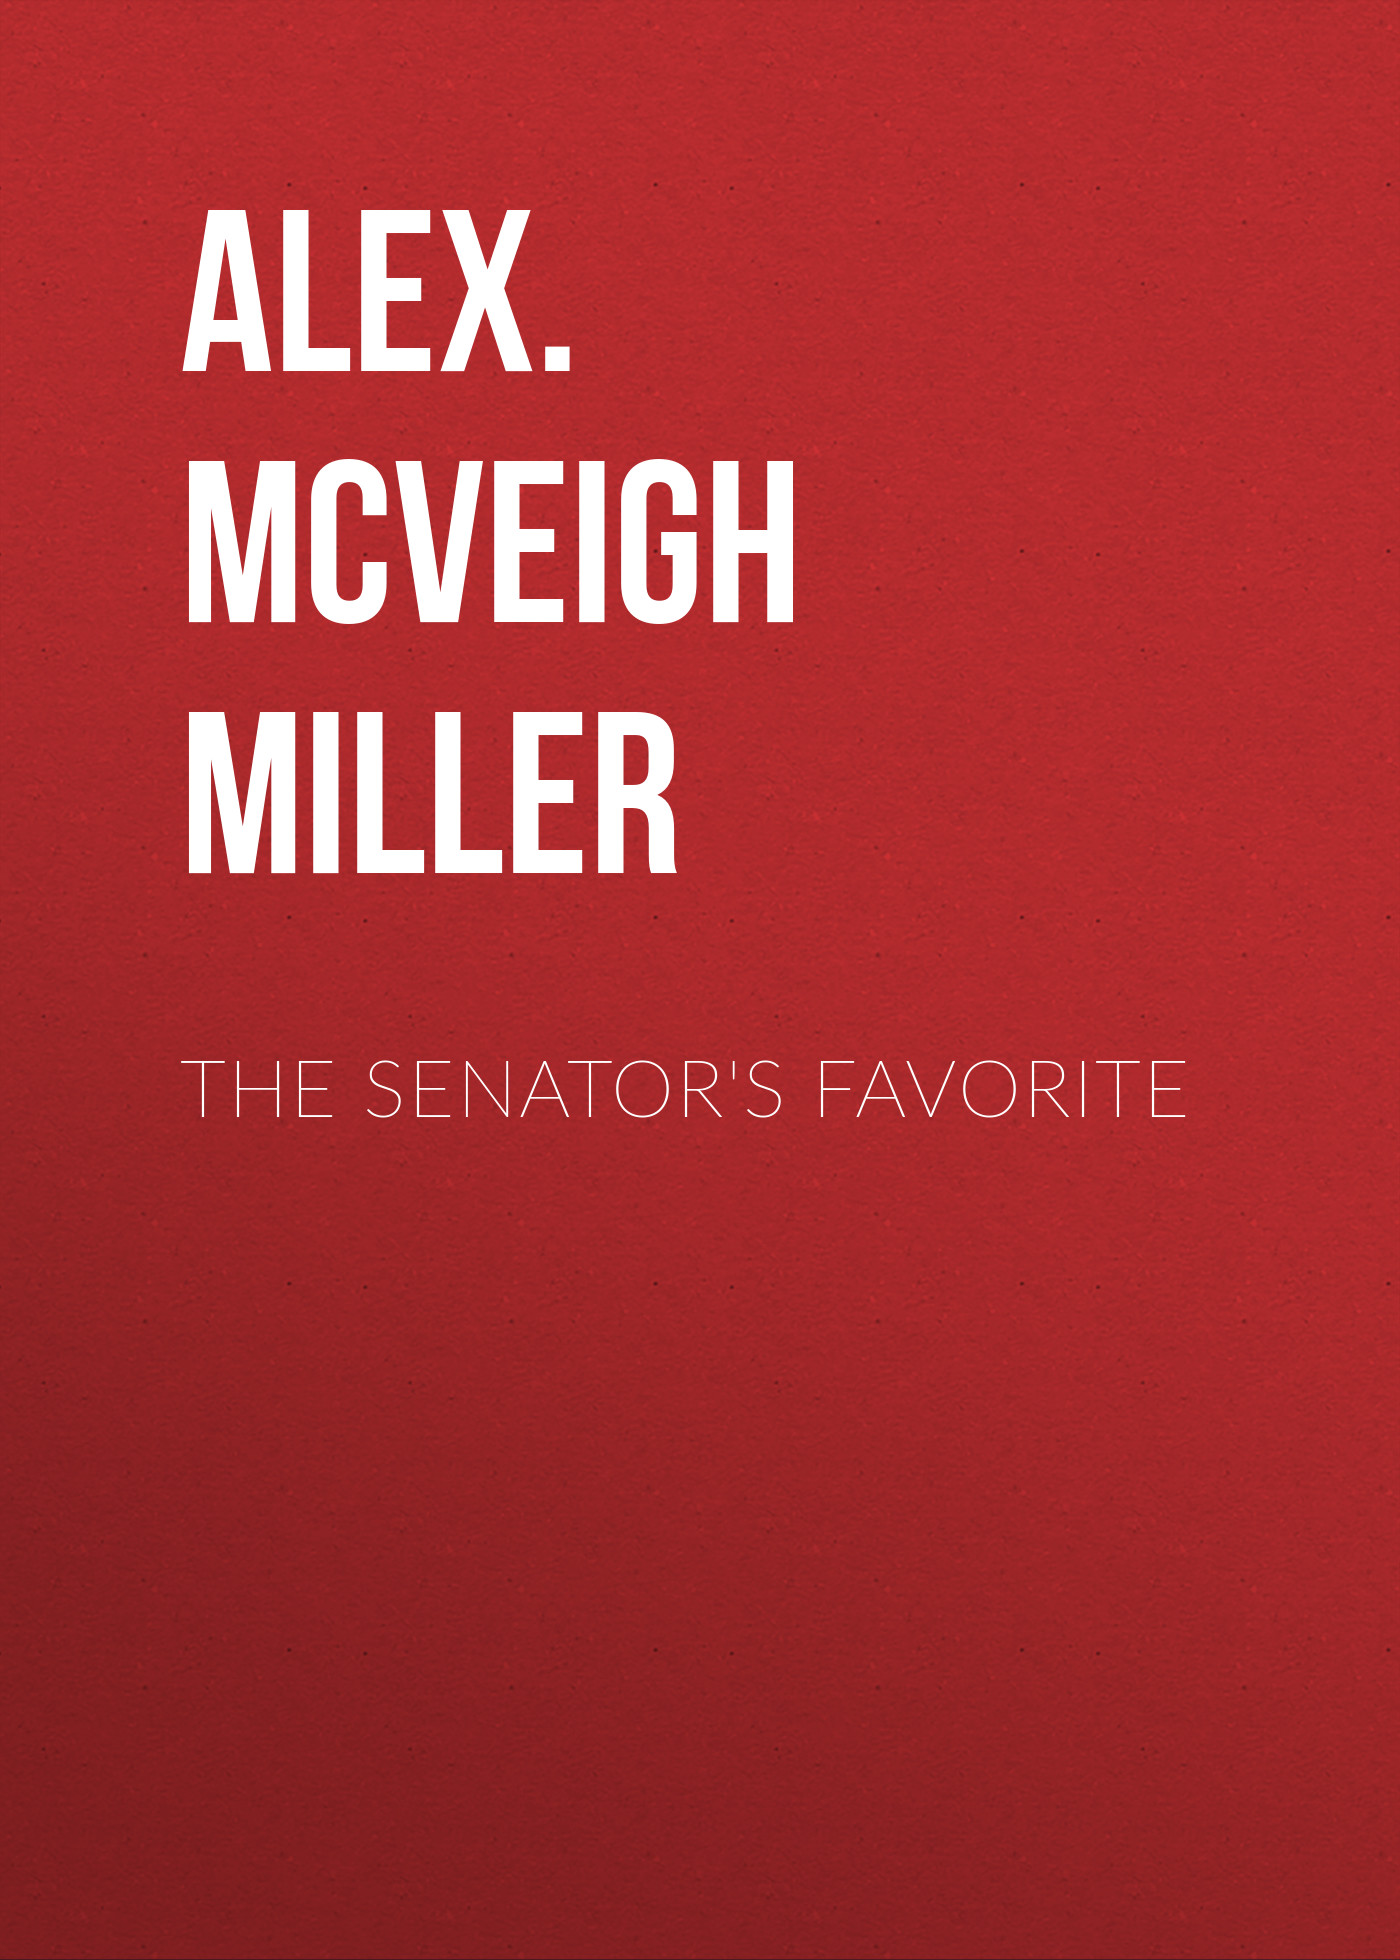 Alex. McVeigh Miller The Senator's Favorite alex mcveigh miller guy kenmore s wife and the rose and the lily